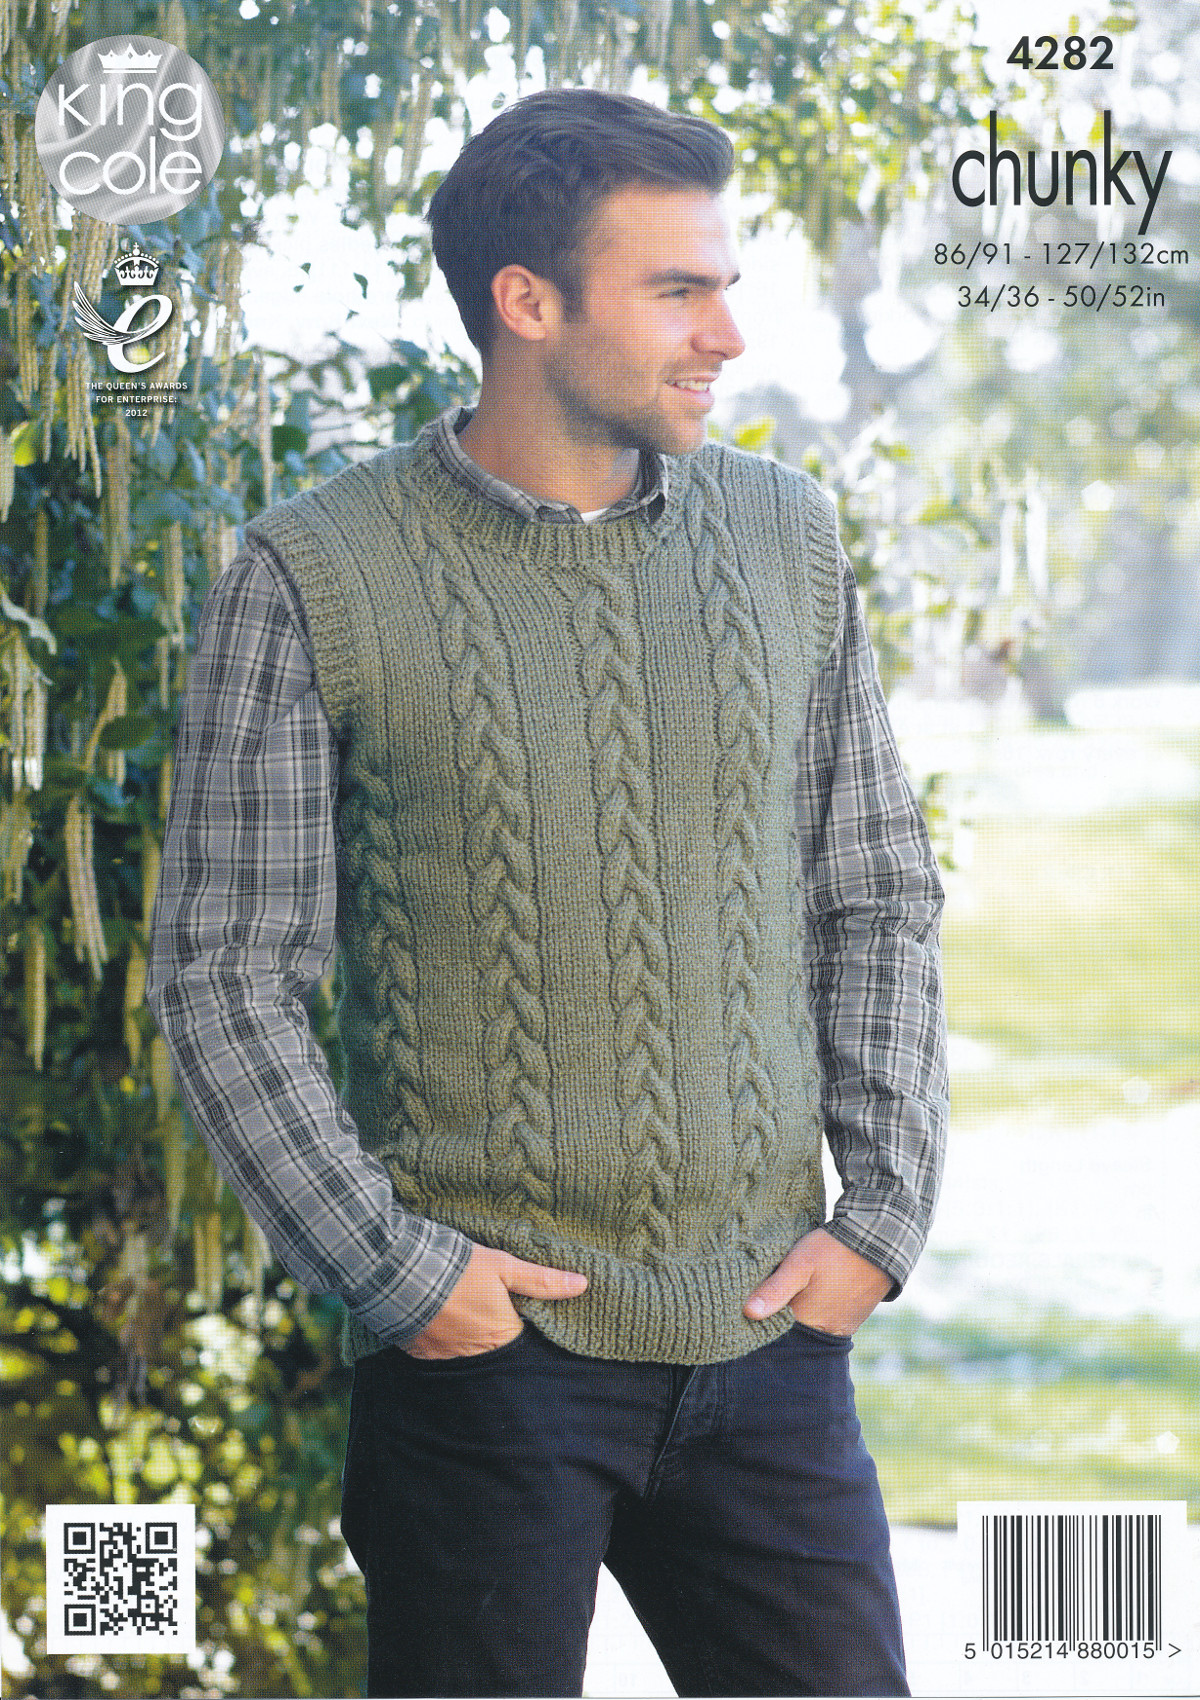 King Cole Magnum Chunky Knitting Pattern Mens Cable Knit Sweater ...